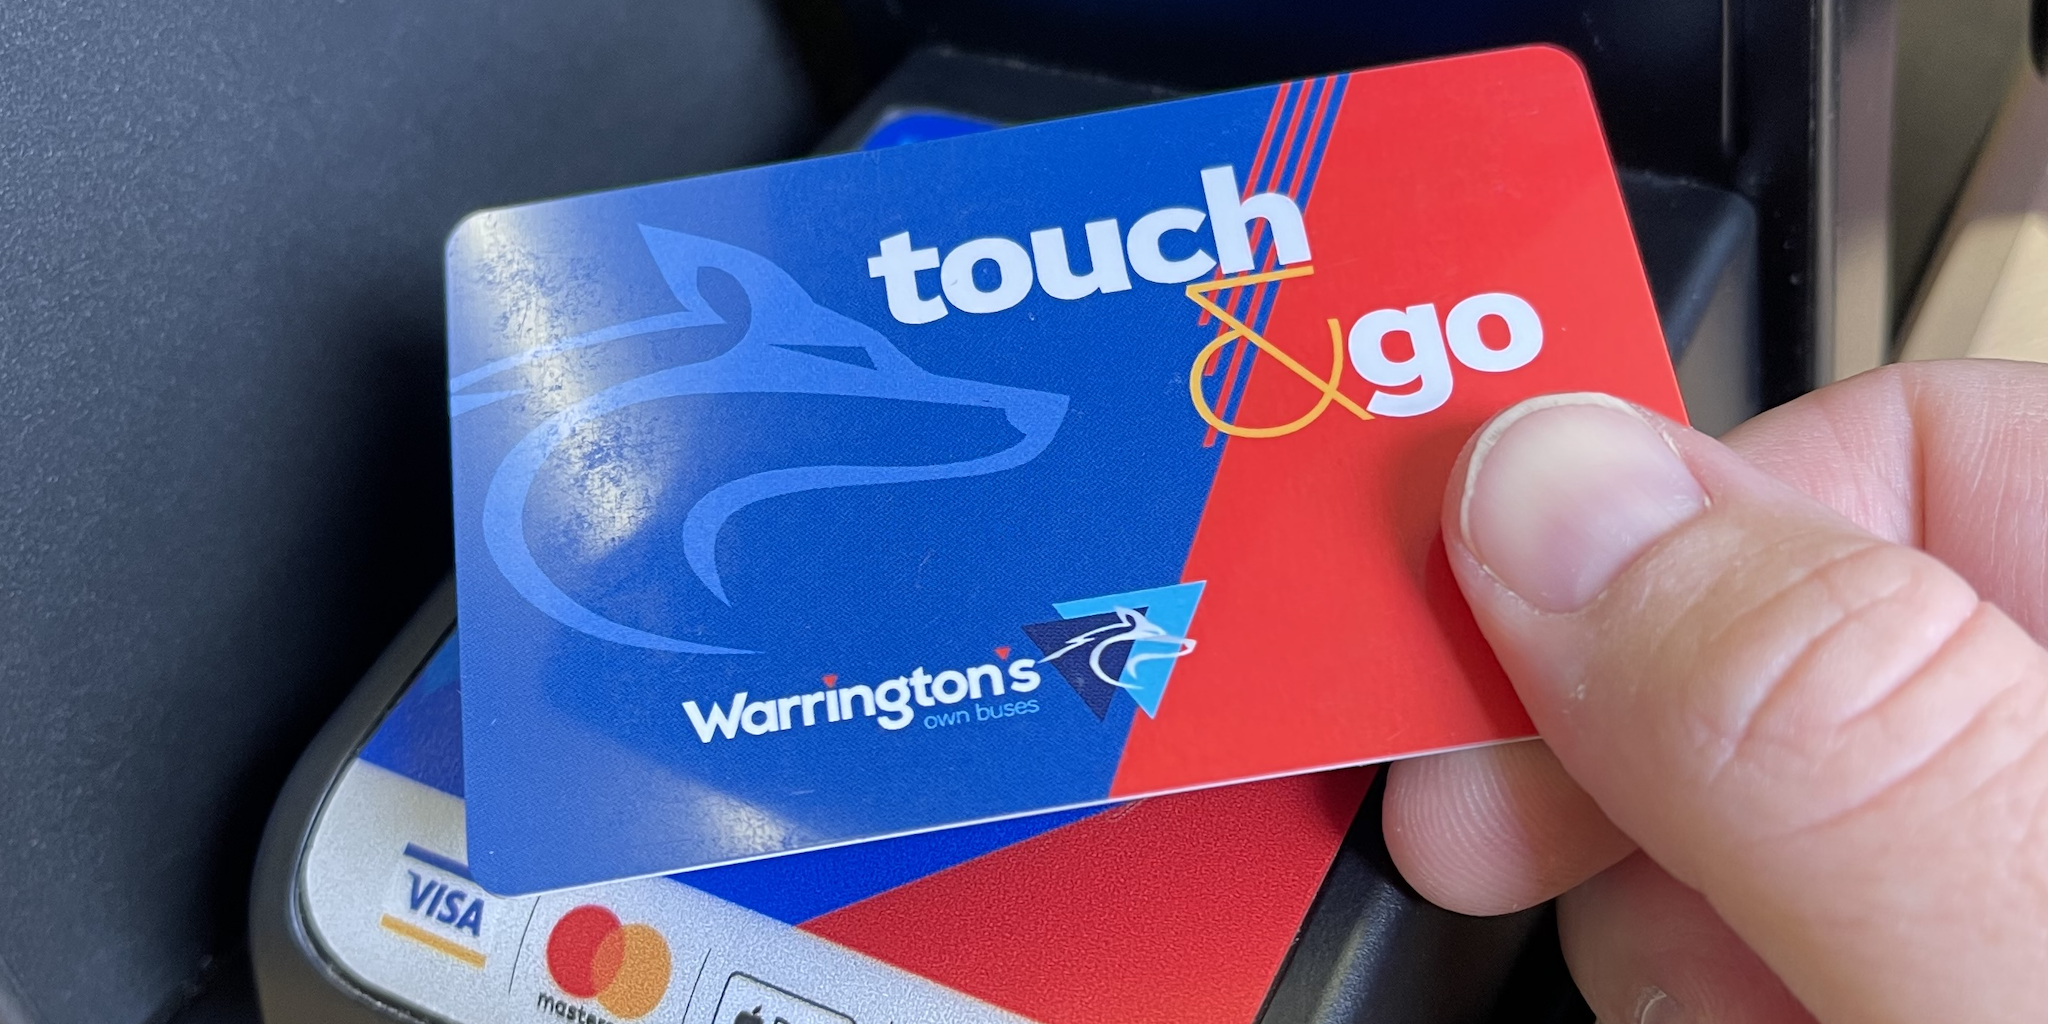 Photograph of a Touch & Go smartcard being used on a bus